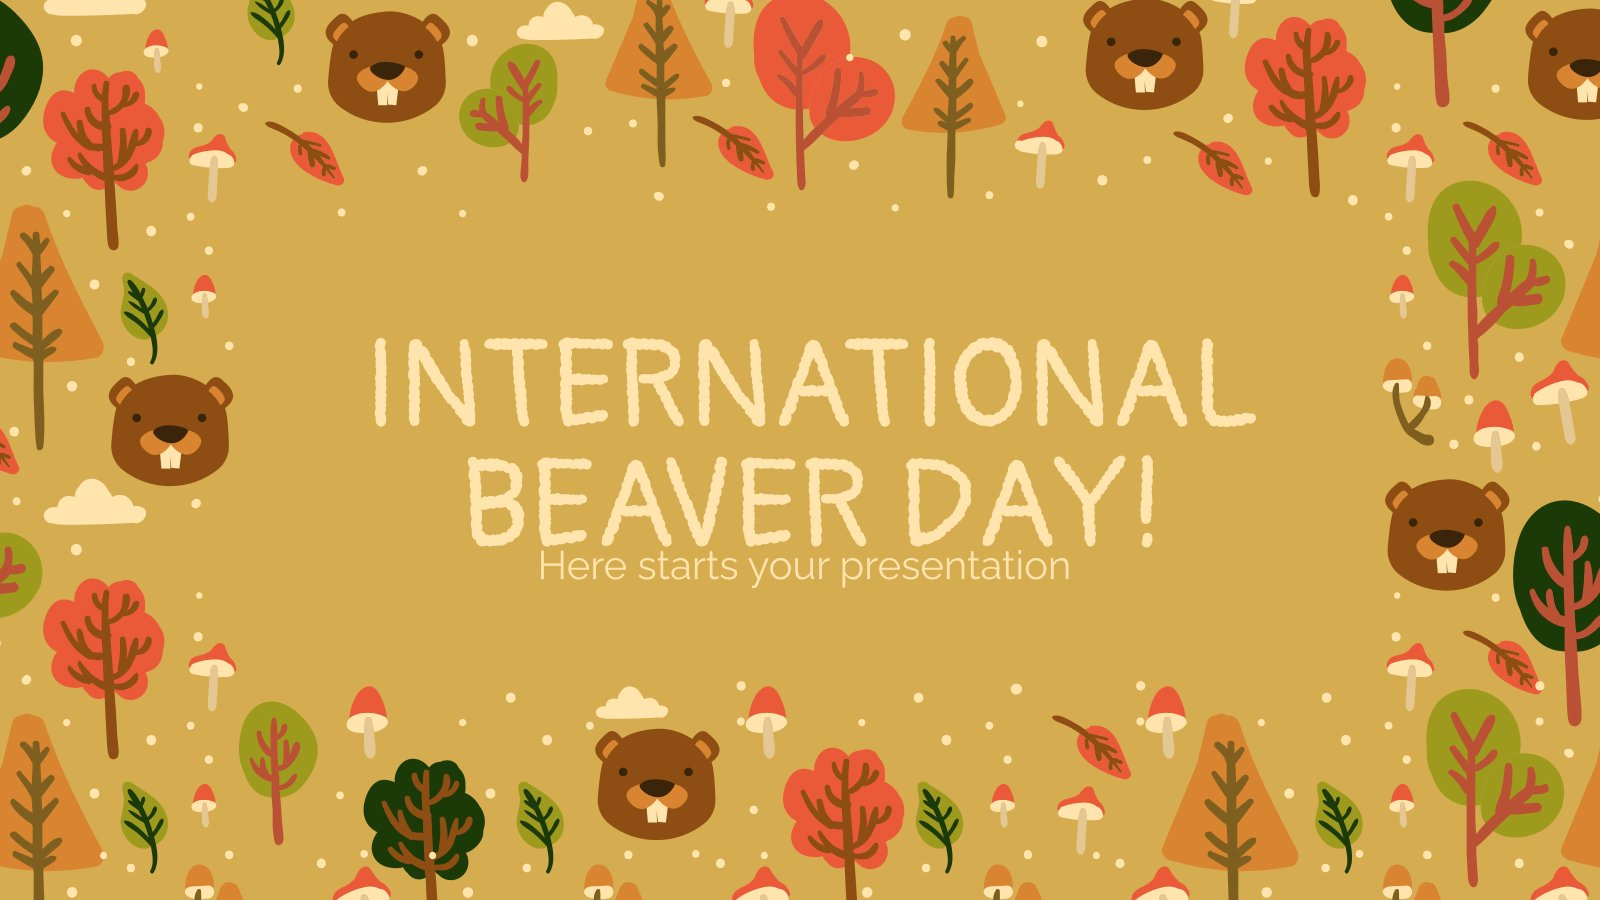 International Beaver Day presentation template